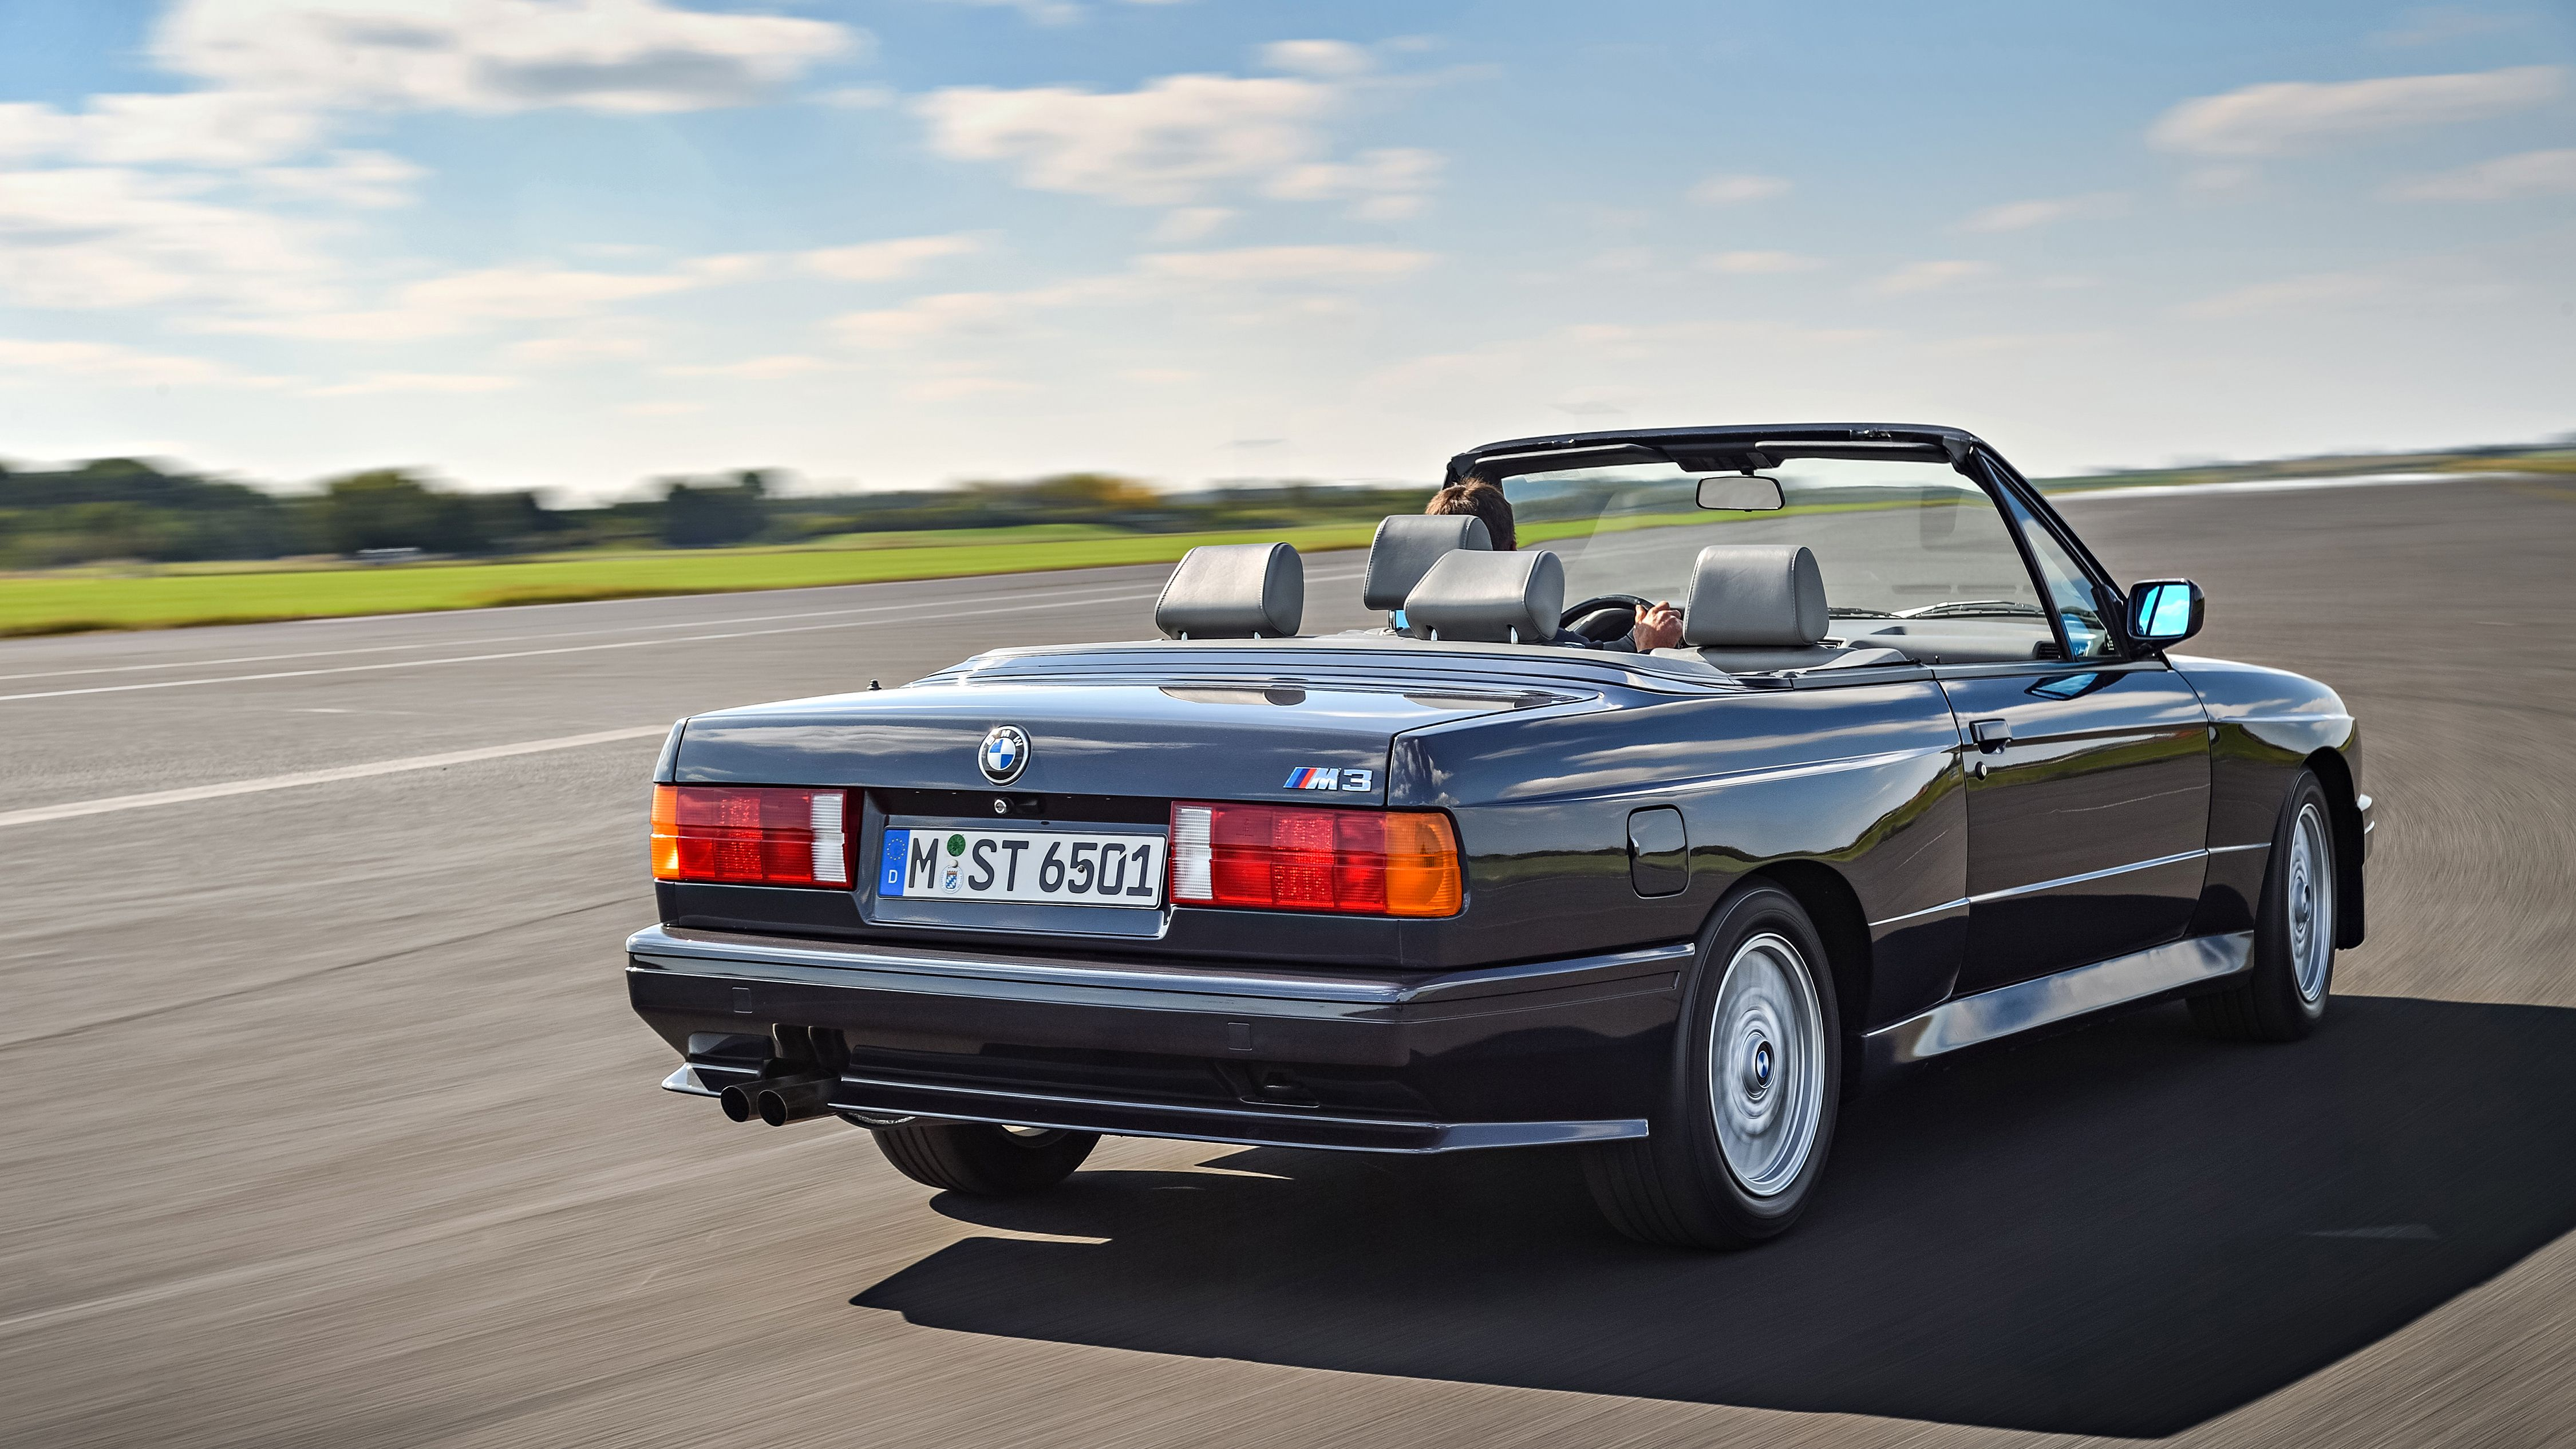 BMW M3 Cabrio (E30) 1988 | BMW | Pinterest | BMW M3, E30 and BMW